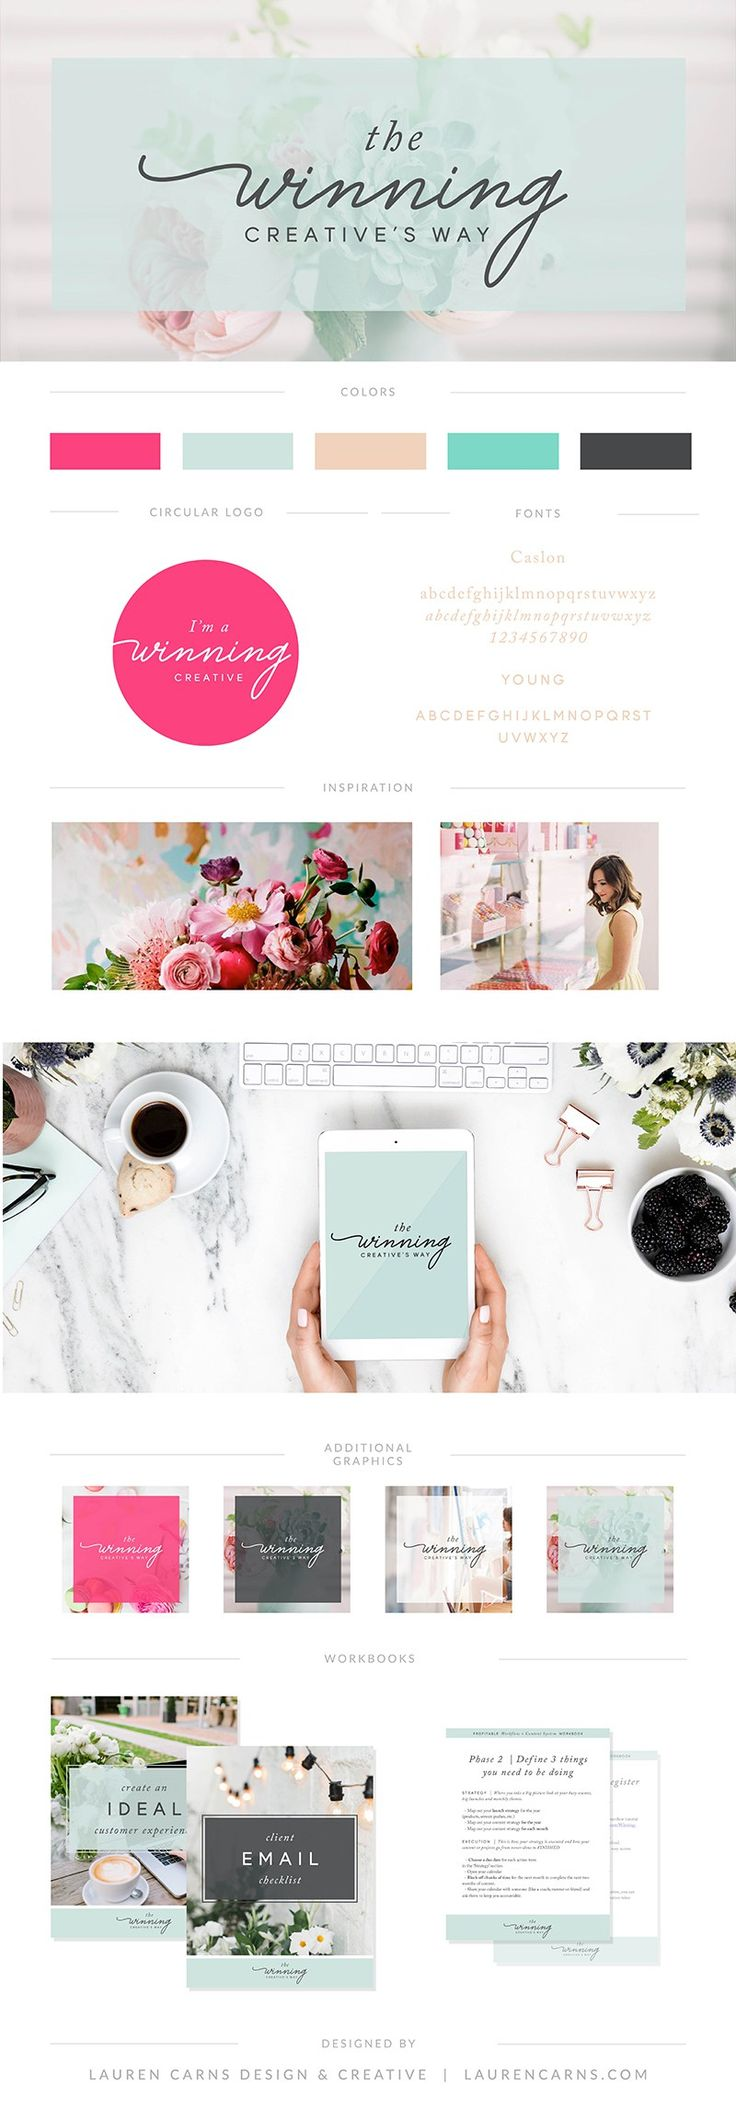 Winning Creatives Way Brand Board | Course branding | Lauren Carns Design and Creative | colorful branding, course design, fresh attractive branding